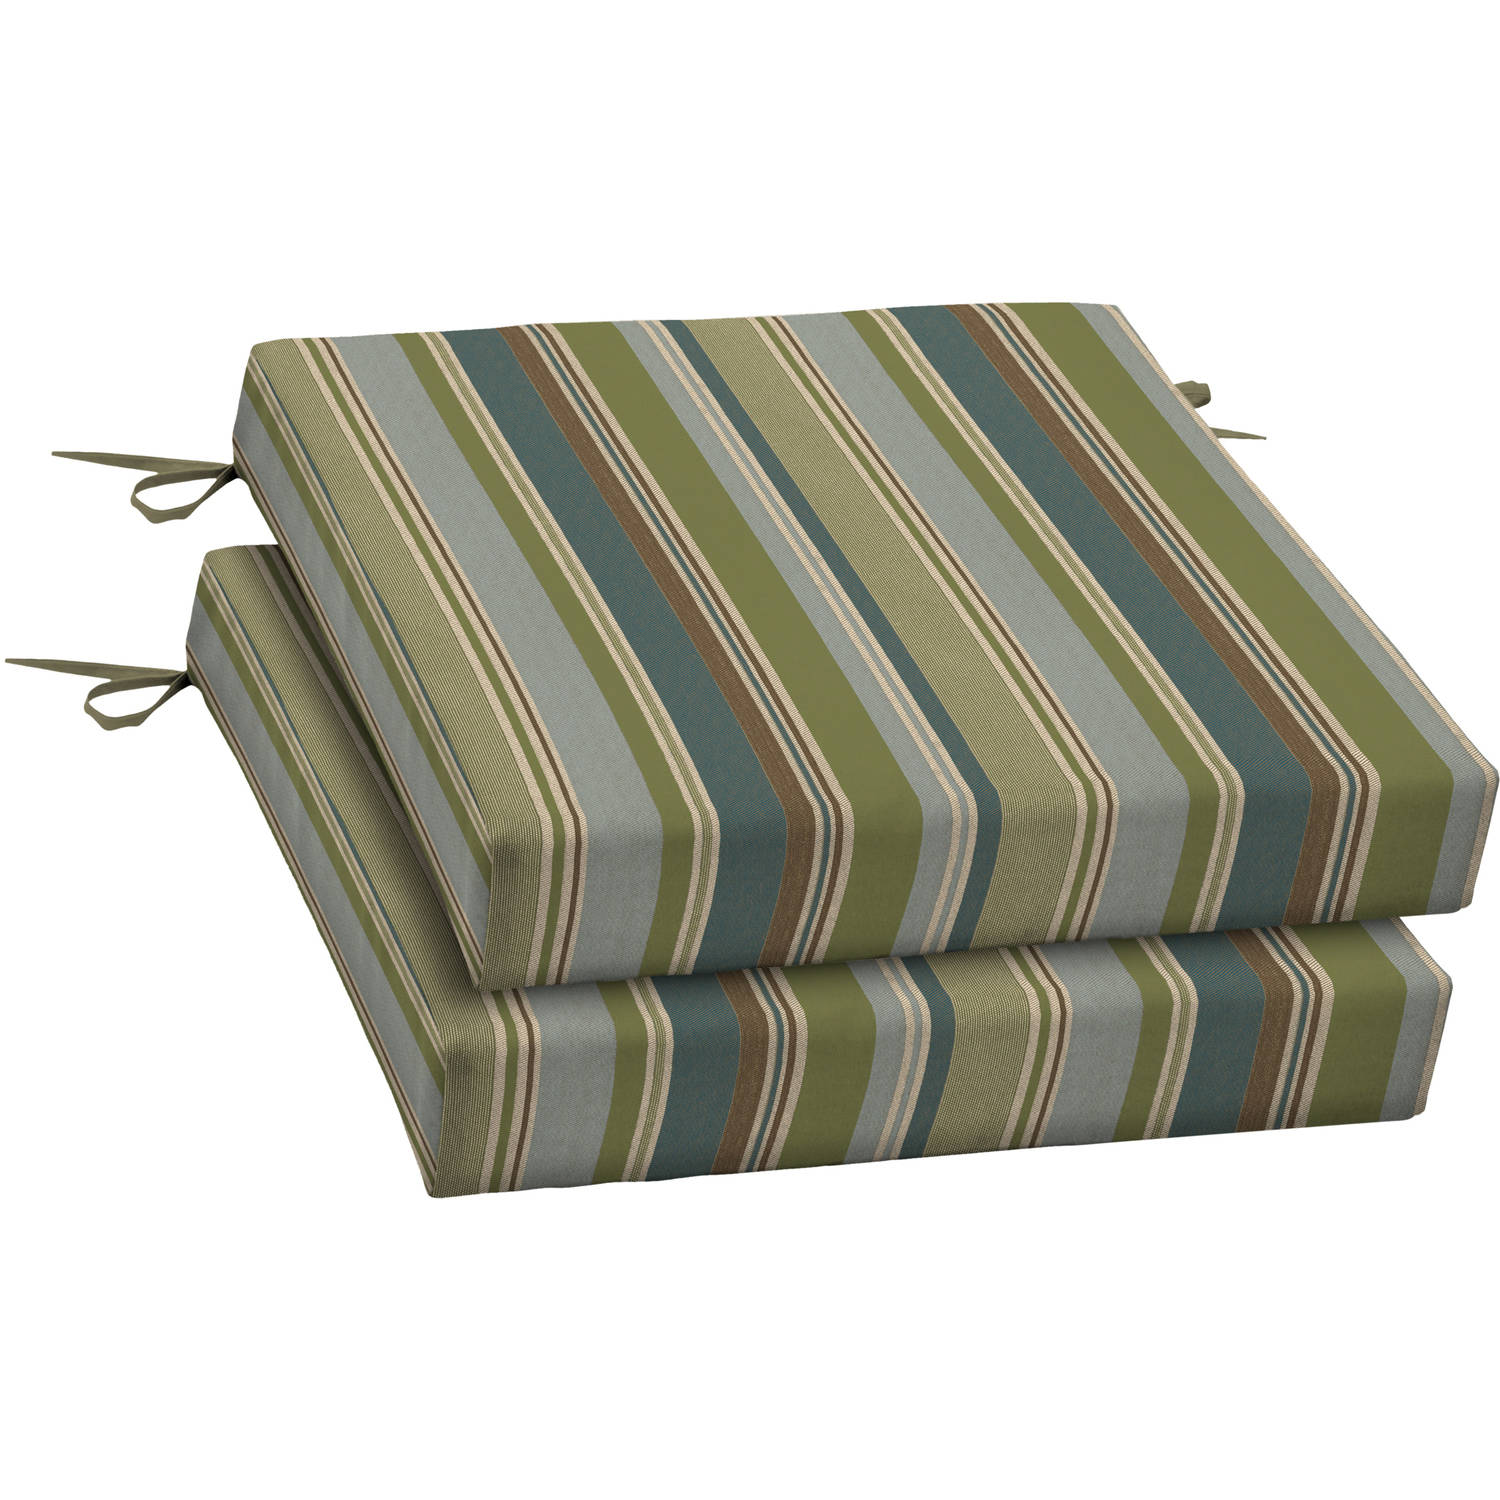 Mainstays Outdoor Dining Seat Cushion with Handle Set of 2